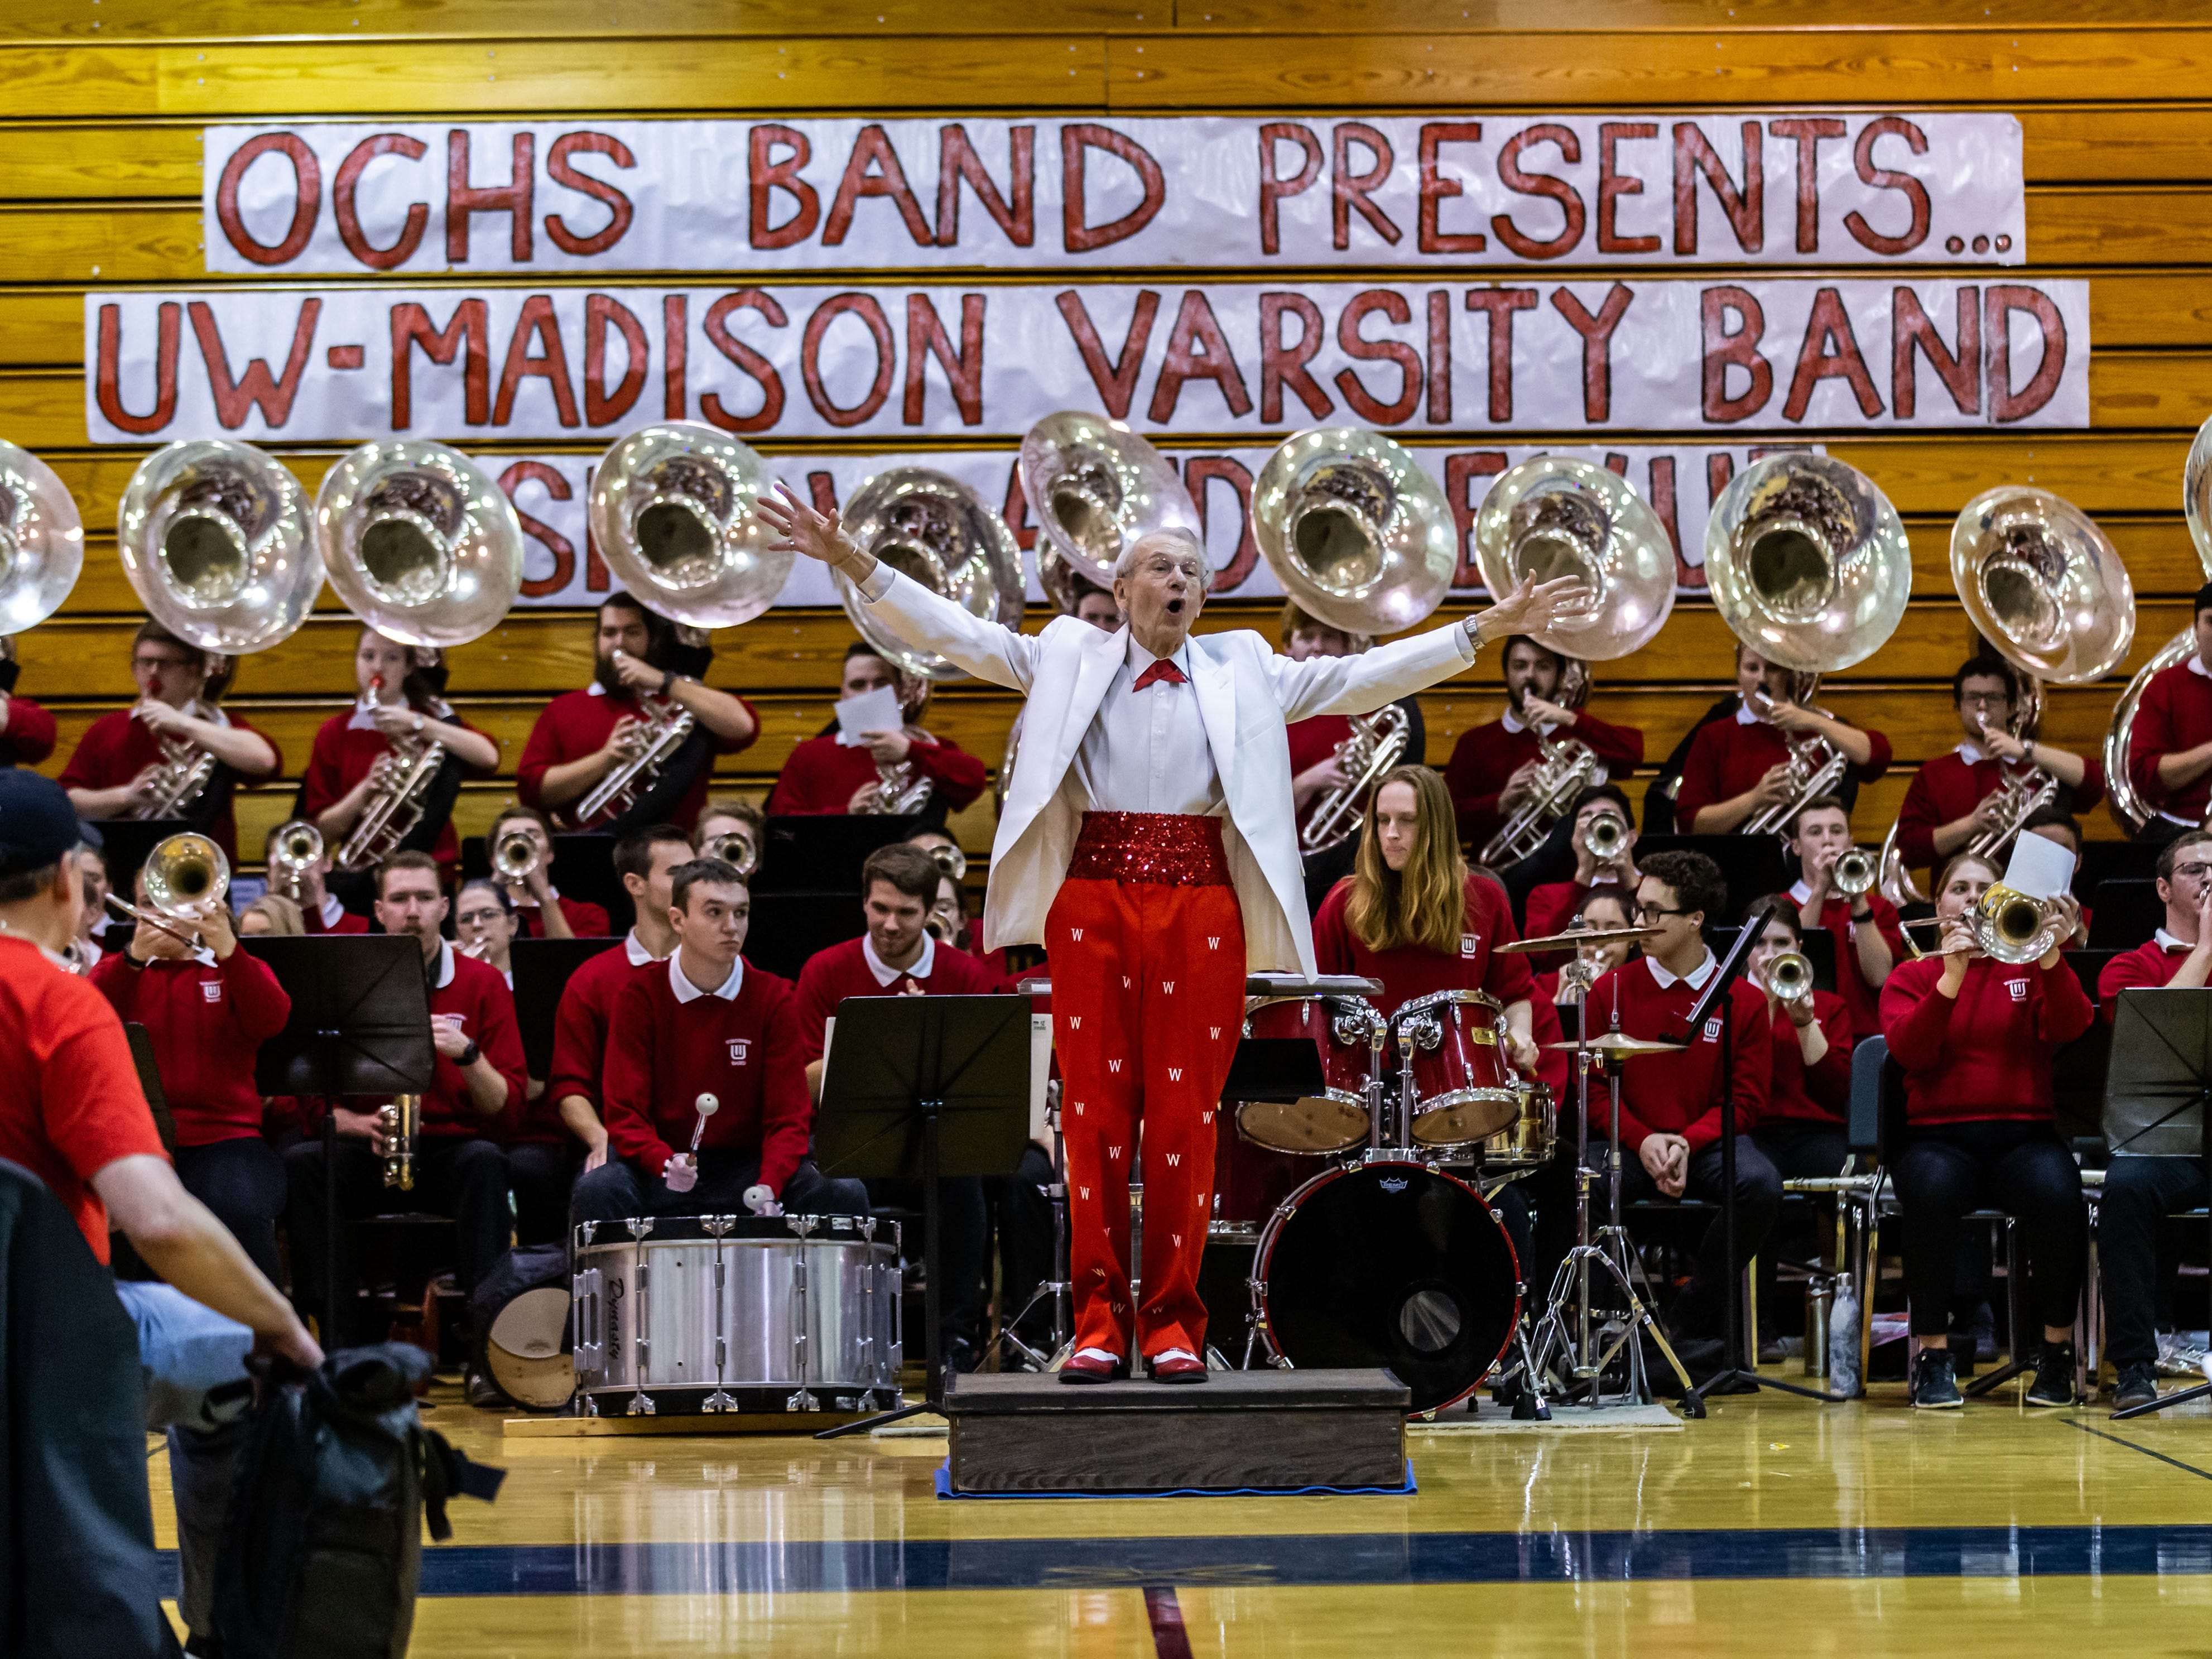 """University of Wisconsin-Madison Varsity Band Director Michael Leckrone leads the band through its 23rd """"Show and Revue"""" at Oak Creek High School on Sunday, Feb. 10, 2019."""